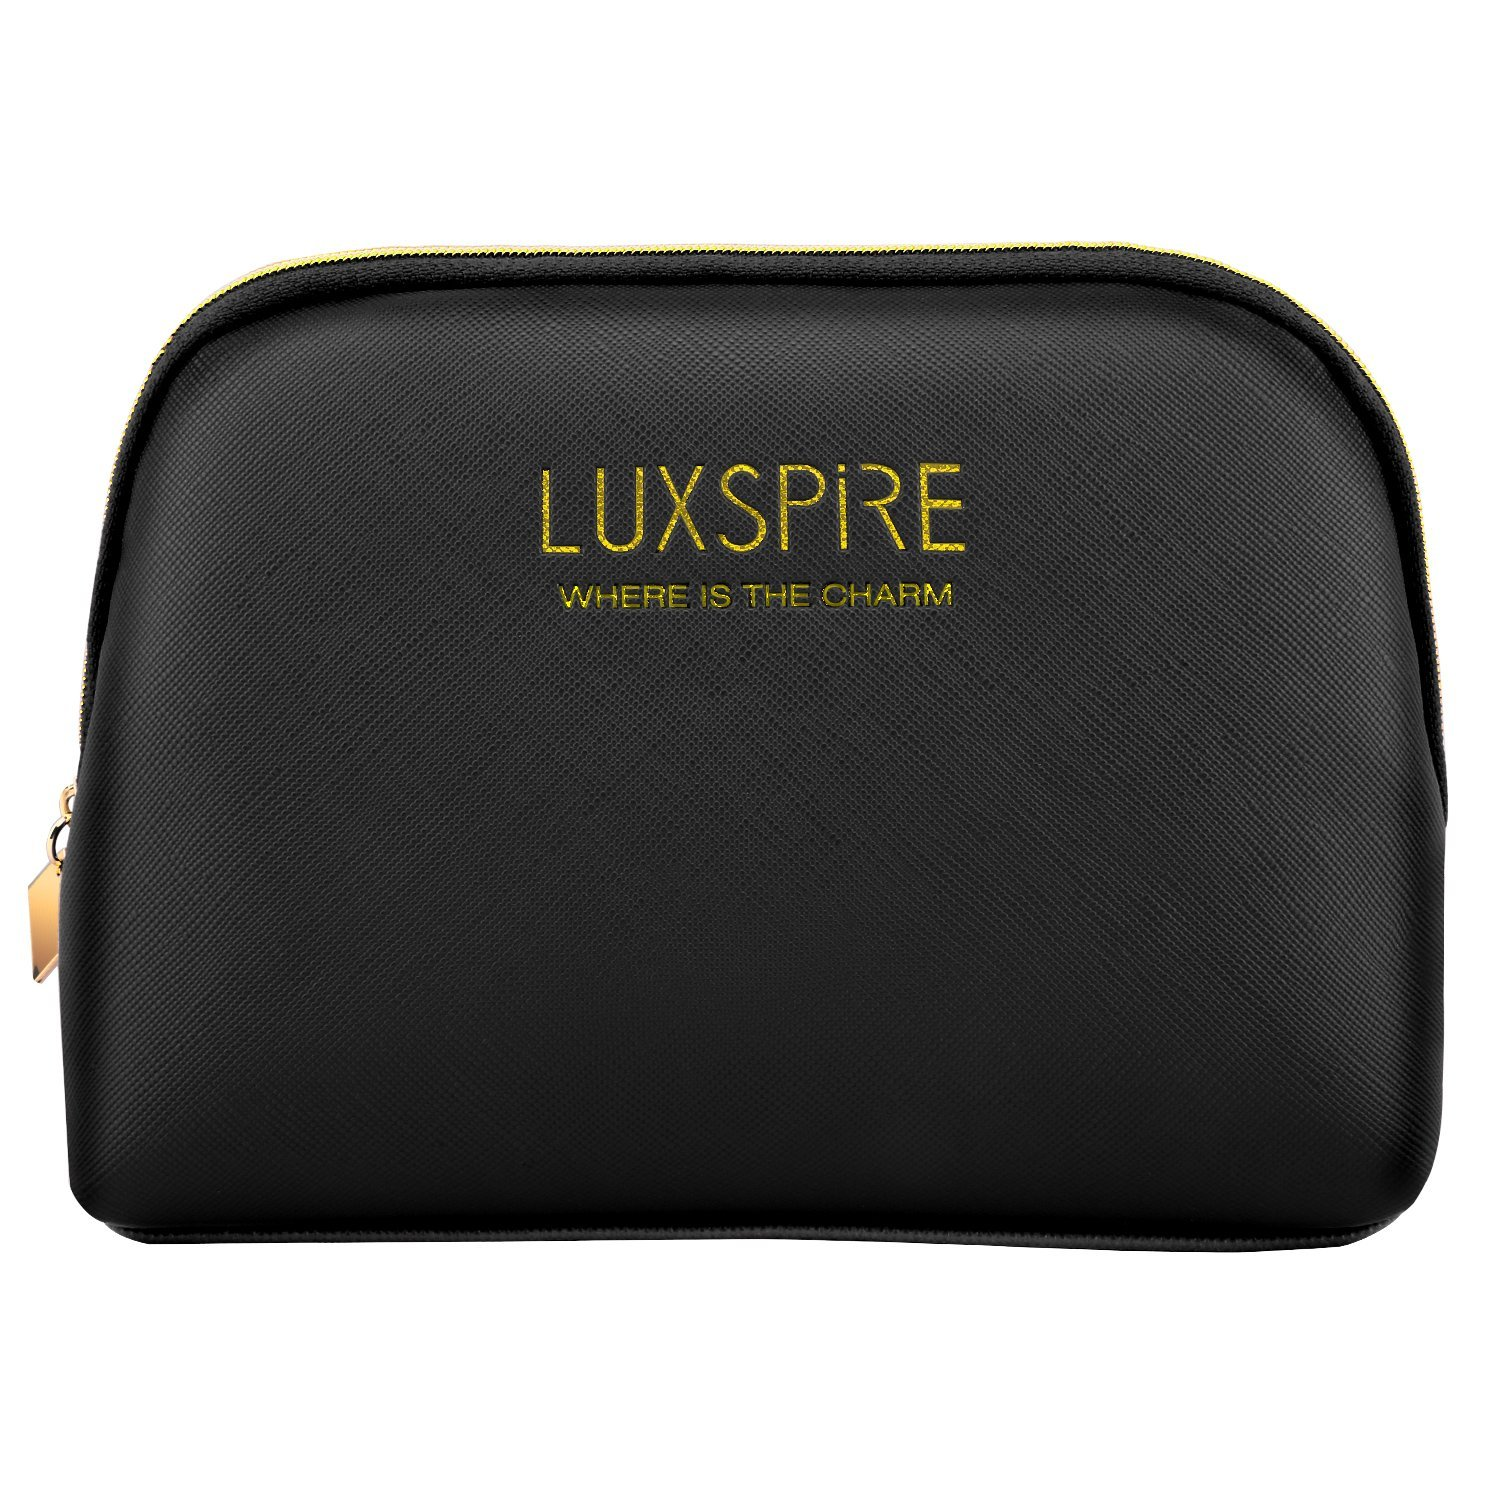 Luxspire Makeup Cosmetic Storage Case, Portable Waterproof Shell Make up Train Case Cosmetic Pouch Travel Storage Bag Toiletry Organizer Tool, Black